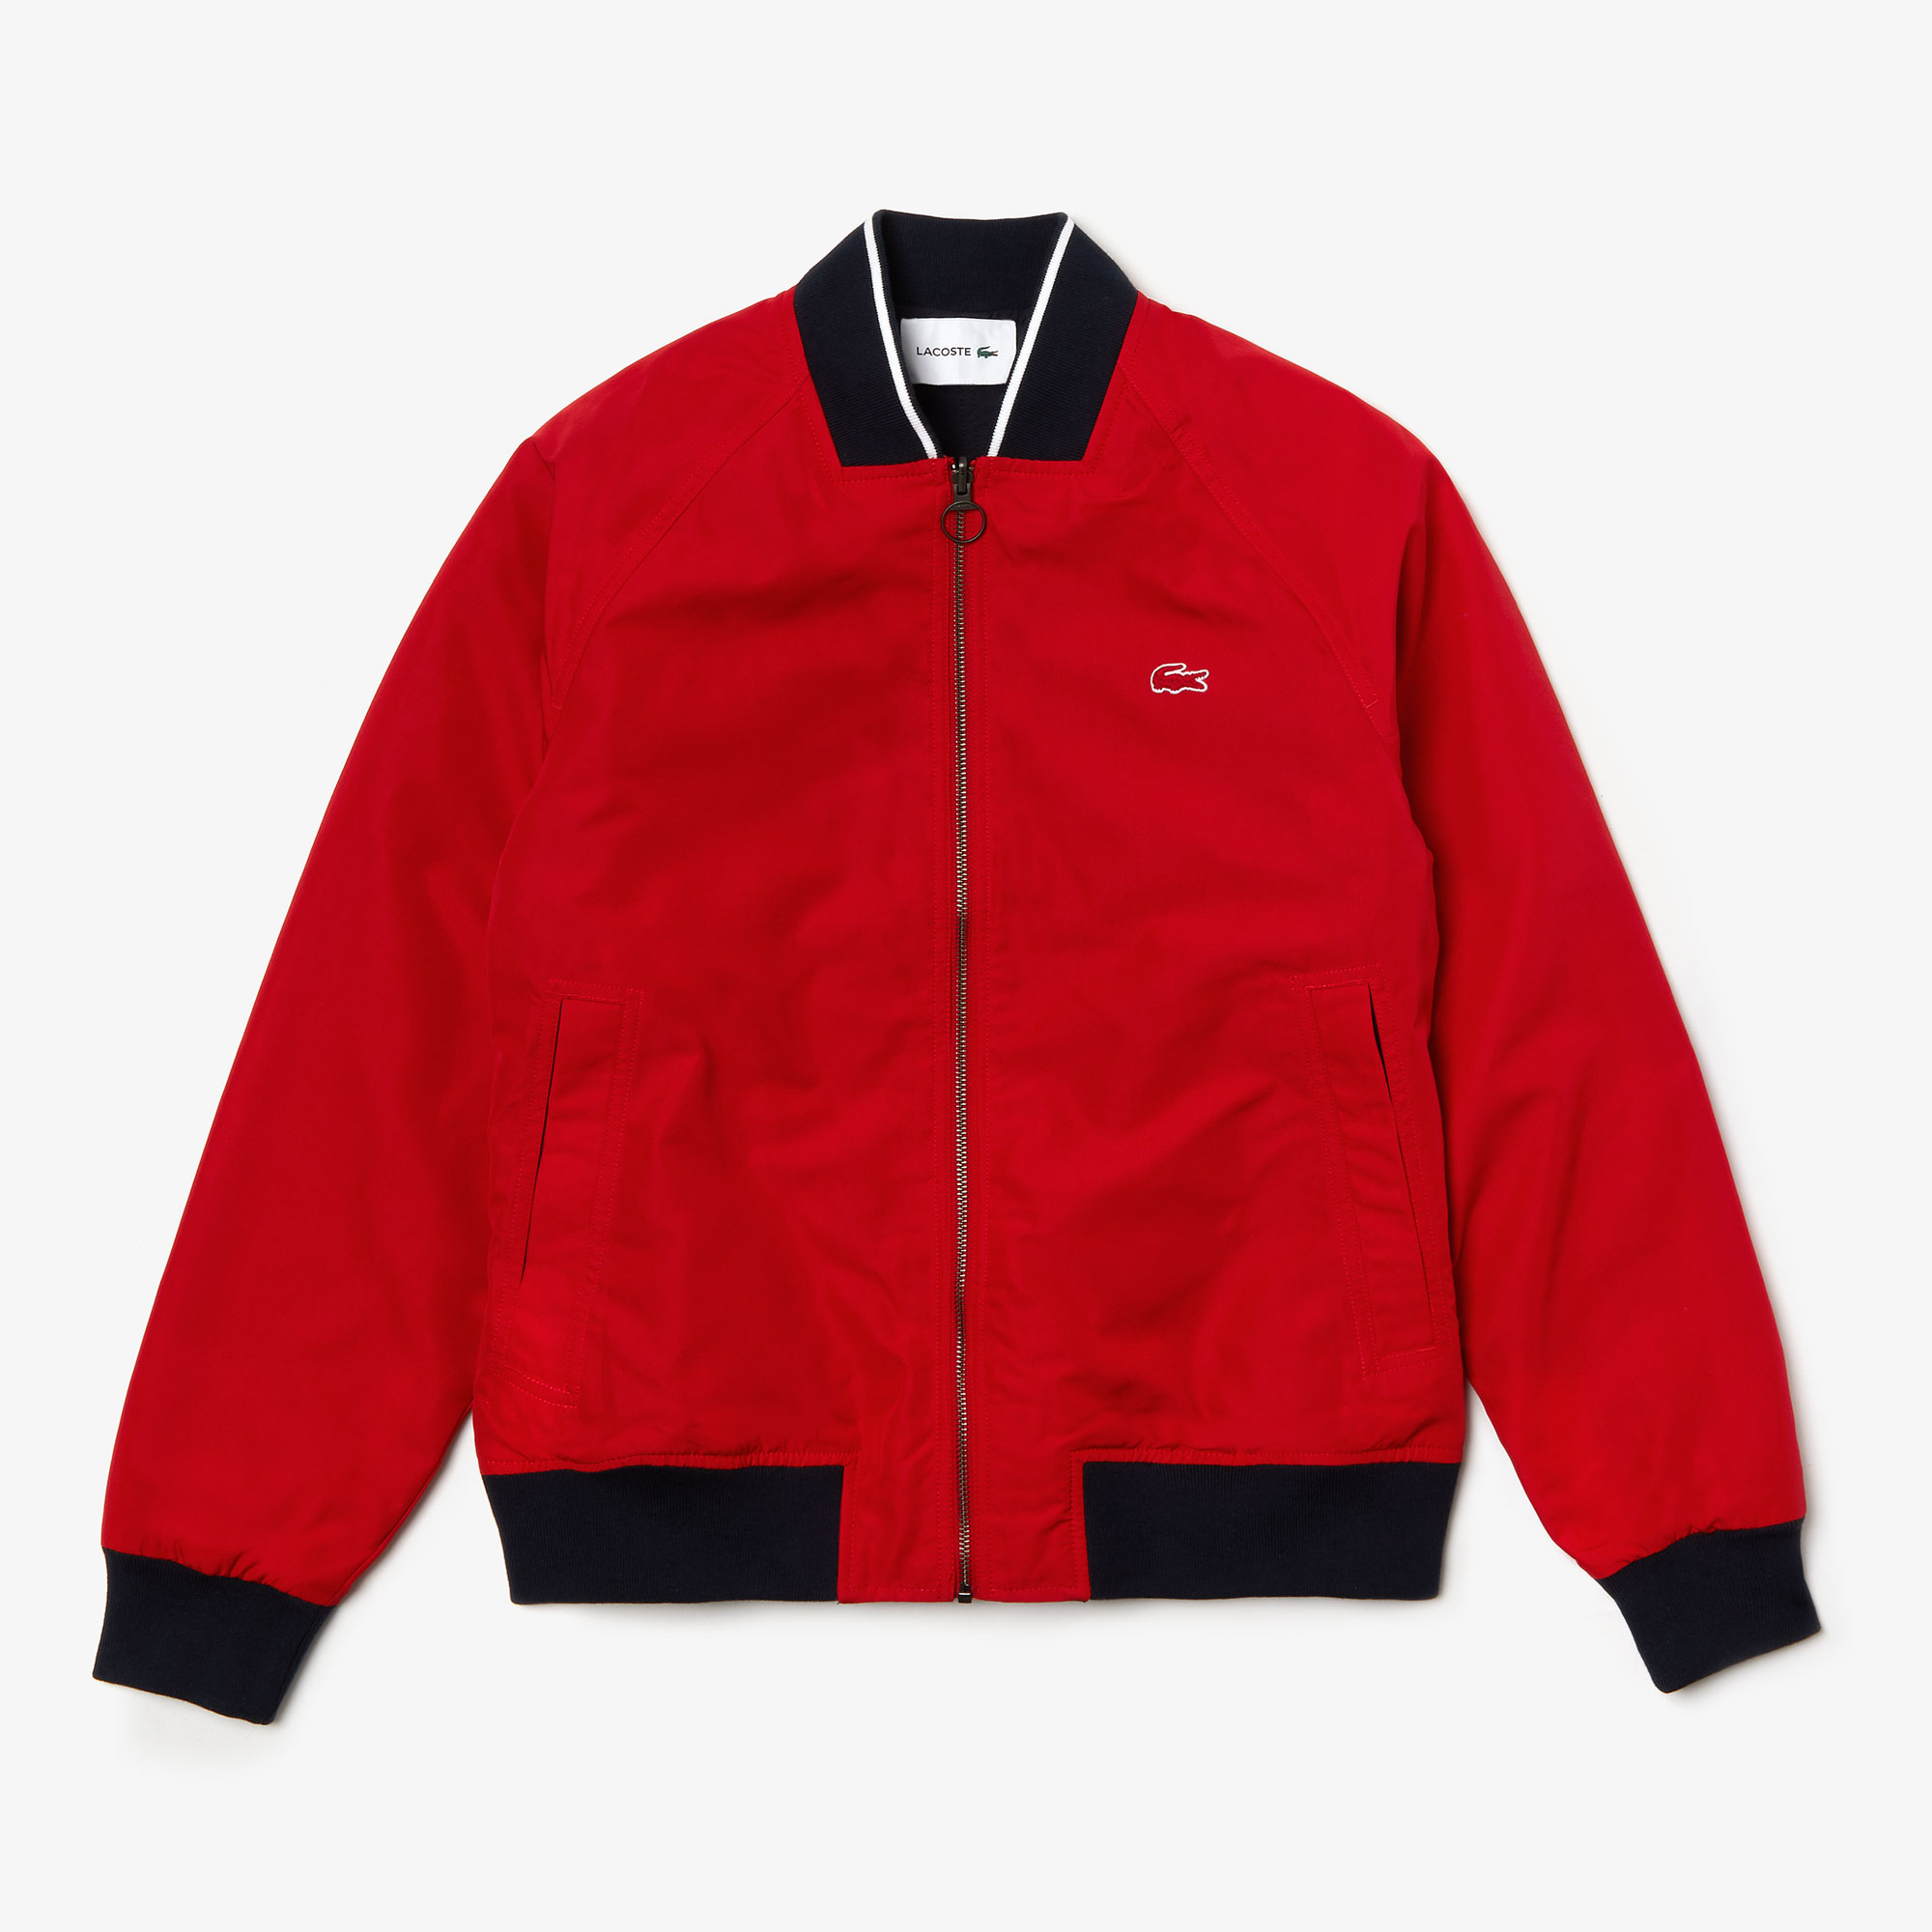 Men's Reversible Lightweight Cotton Bomber